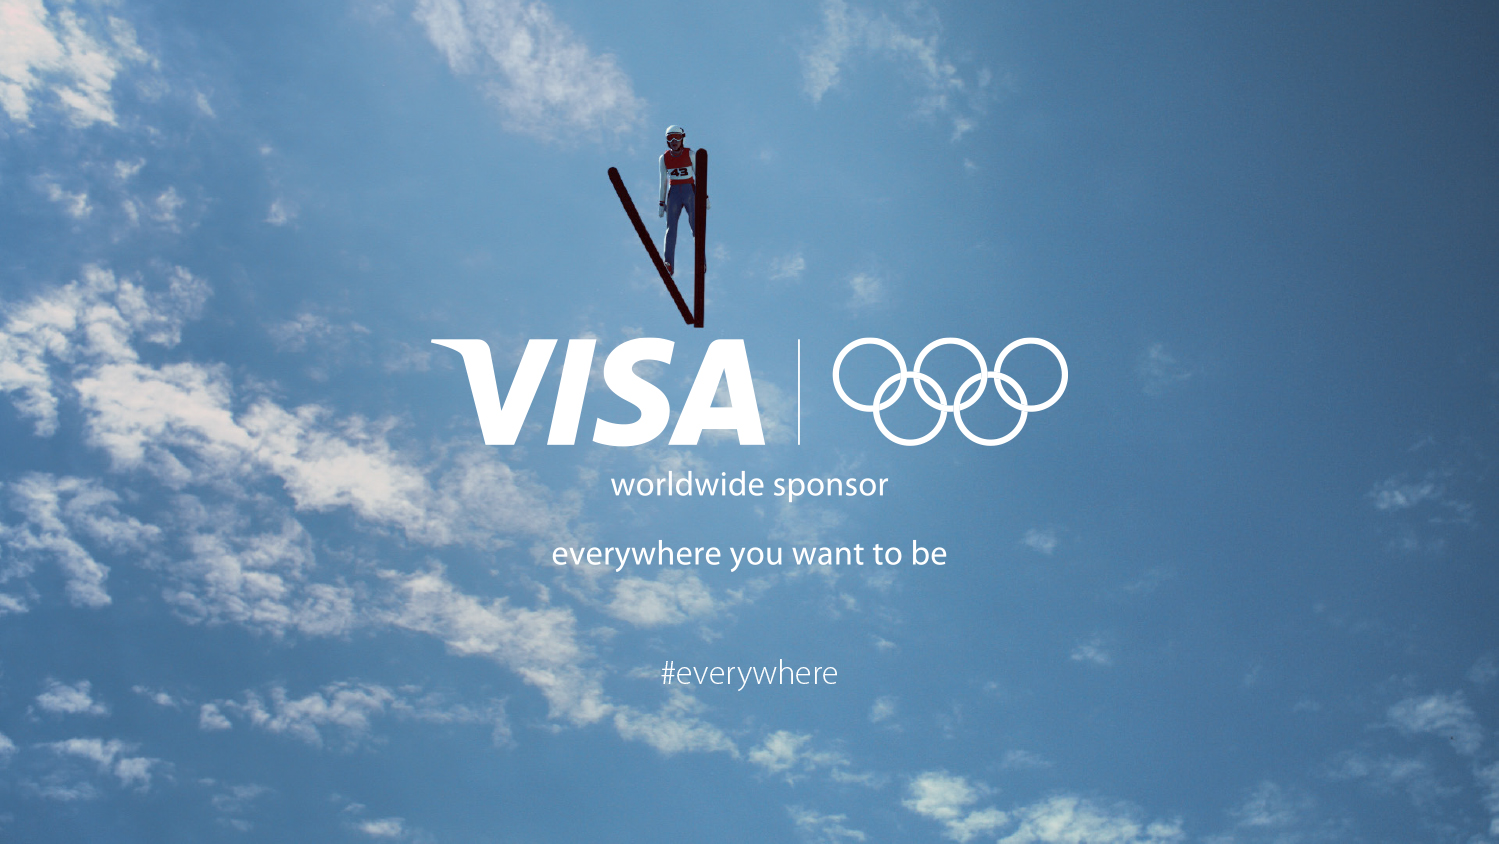 Skier mid jump in the air from below with the Visa and Olympics logo overlaid.